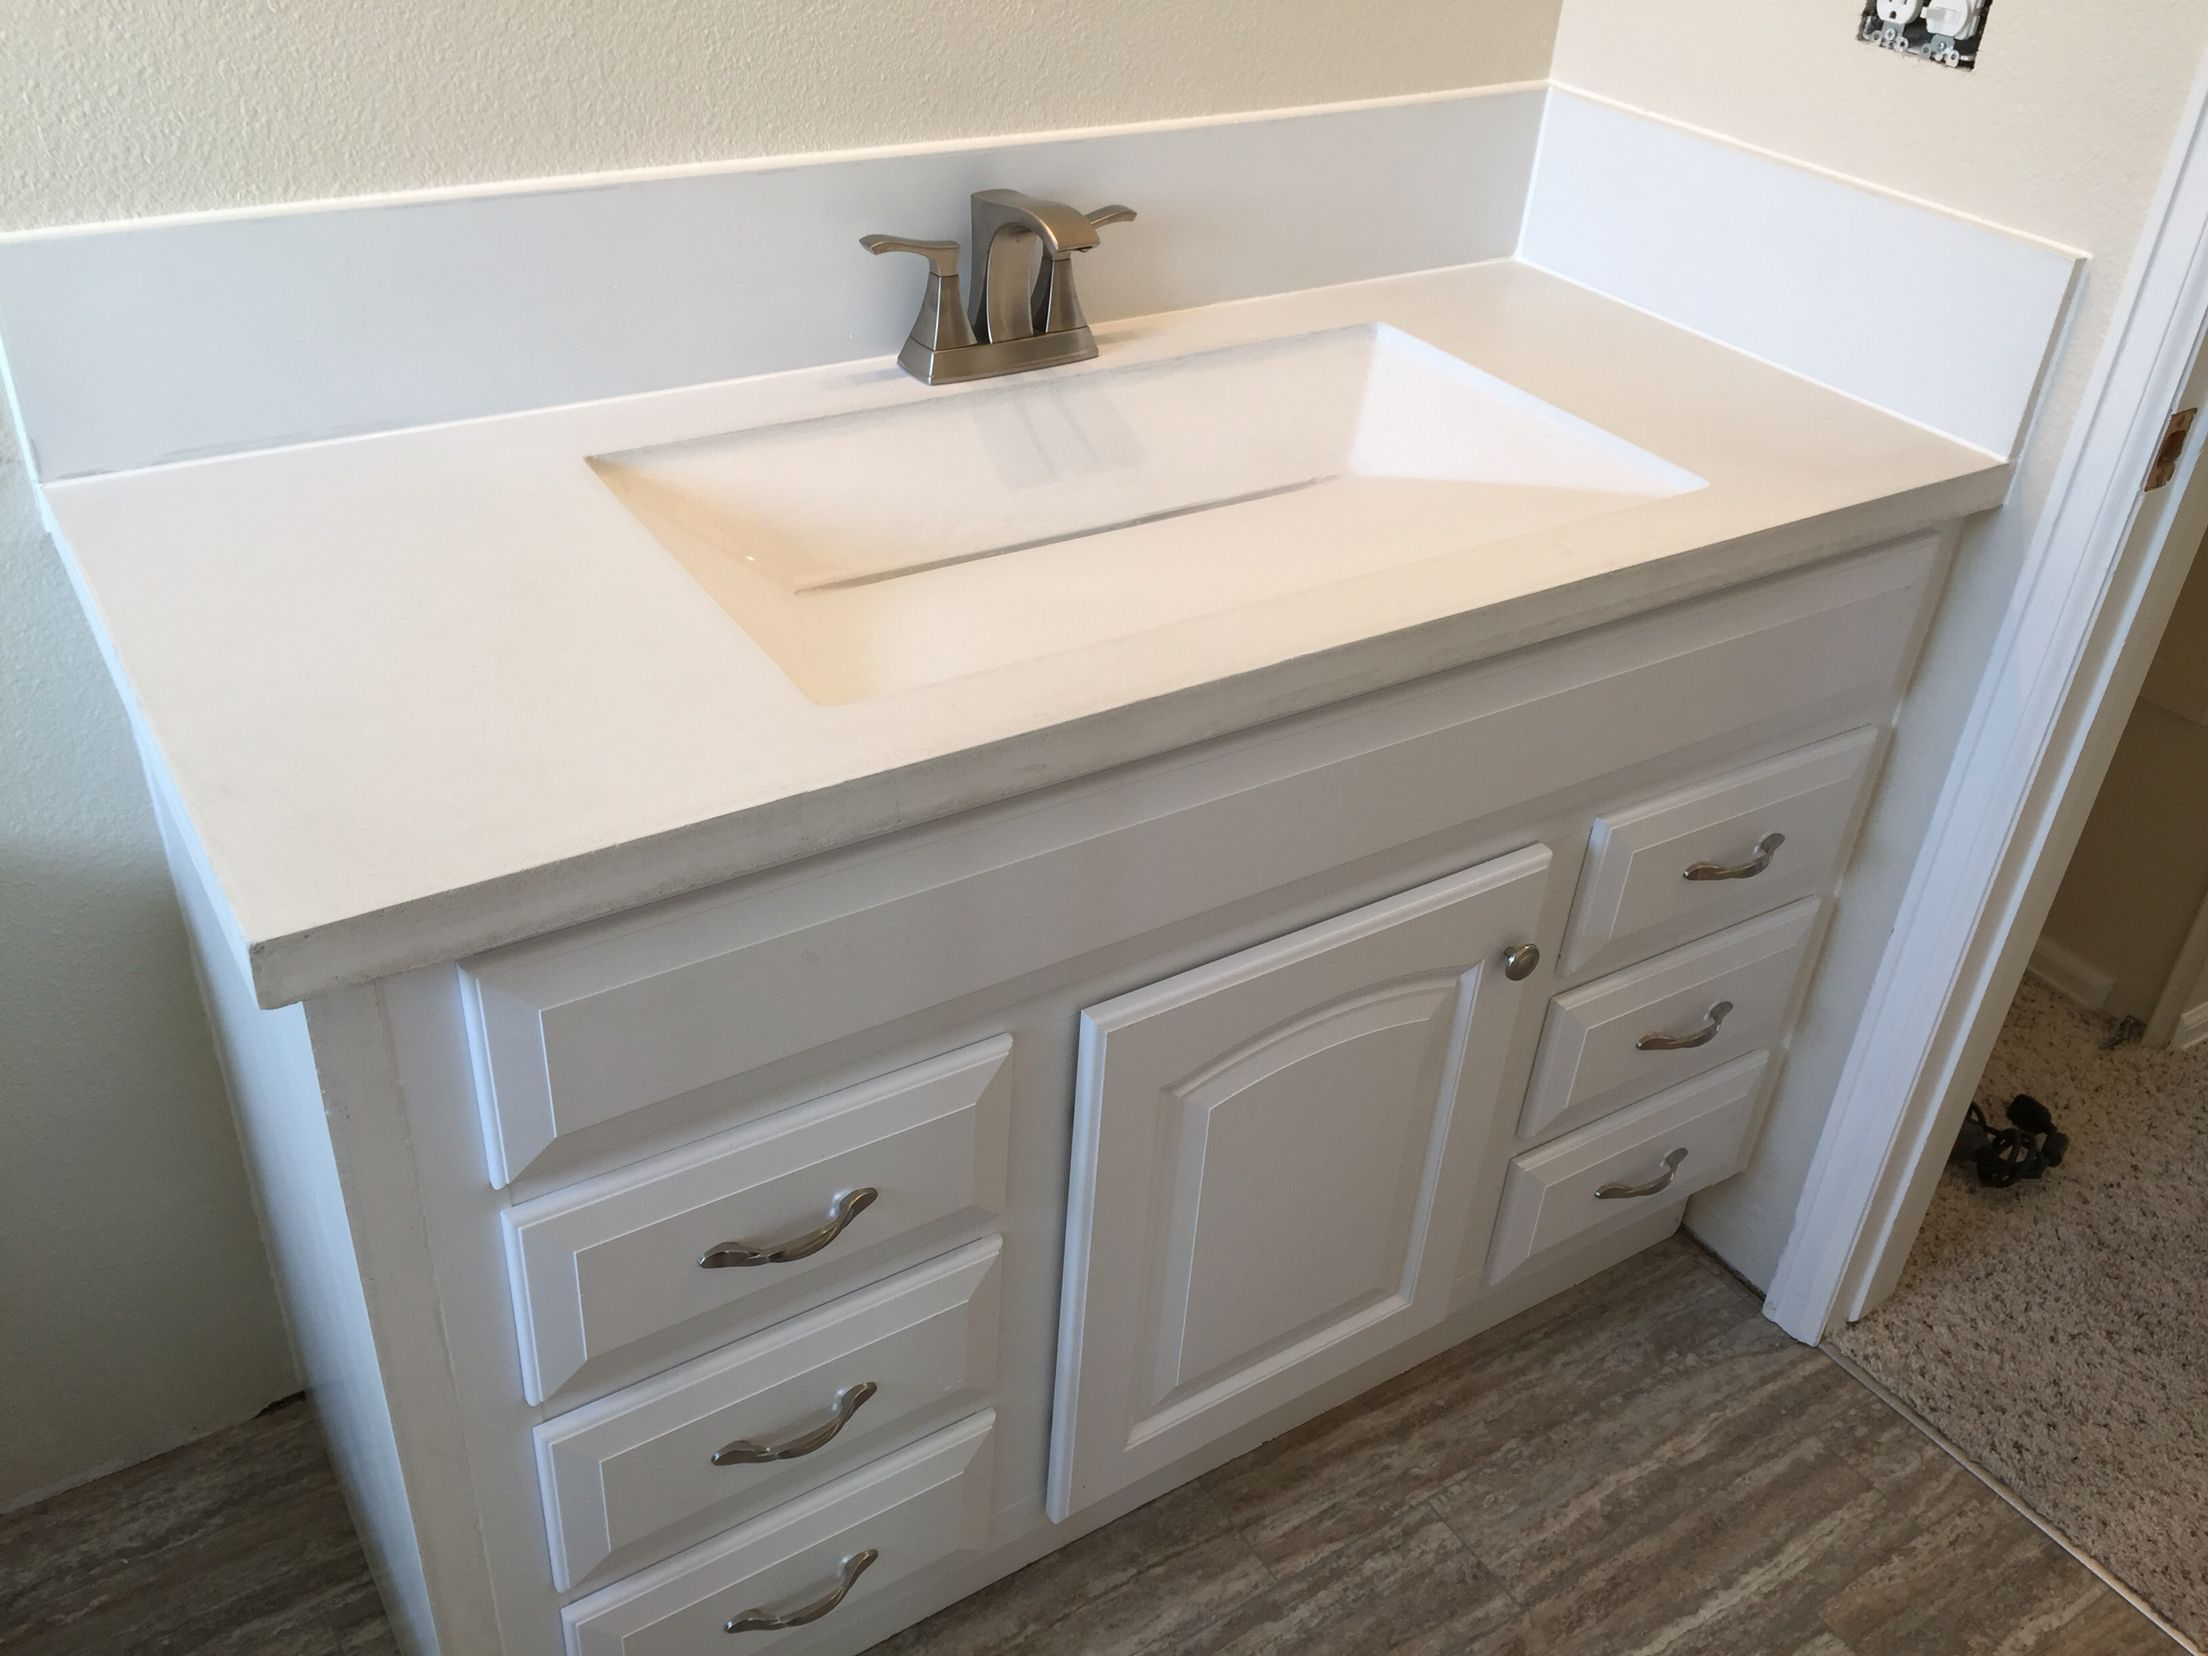 Custom Built White Concrete Countertop With Integrated Sink And Slot Drain Features 6 Backsplash Side Panel